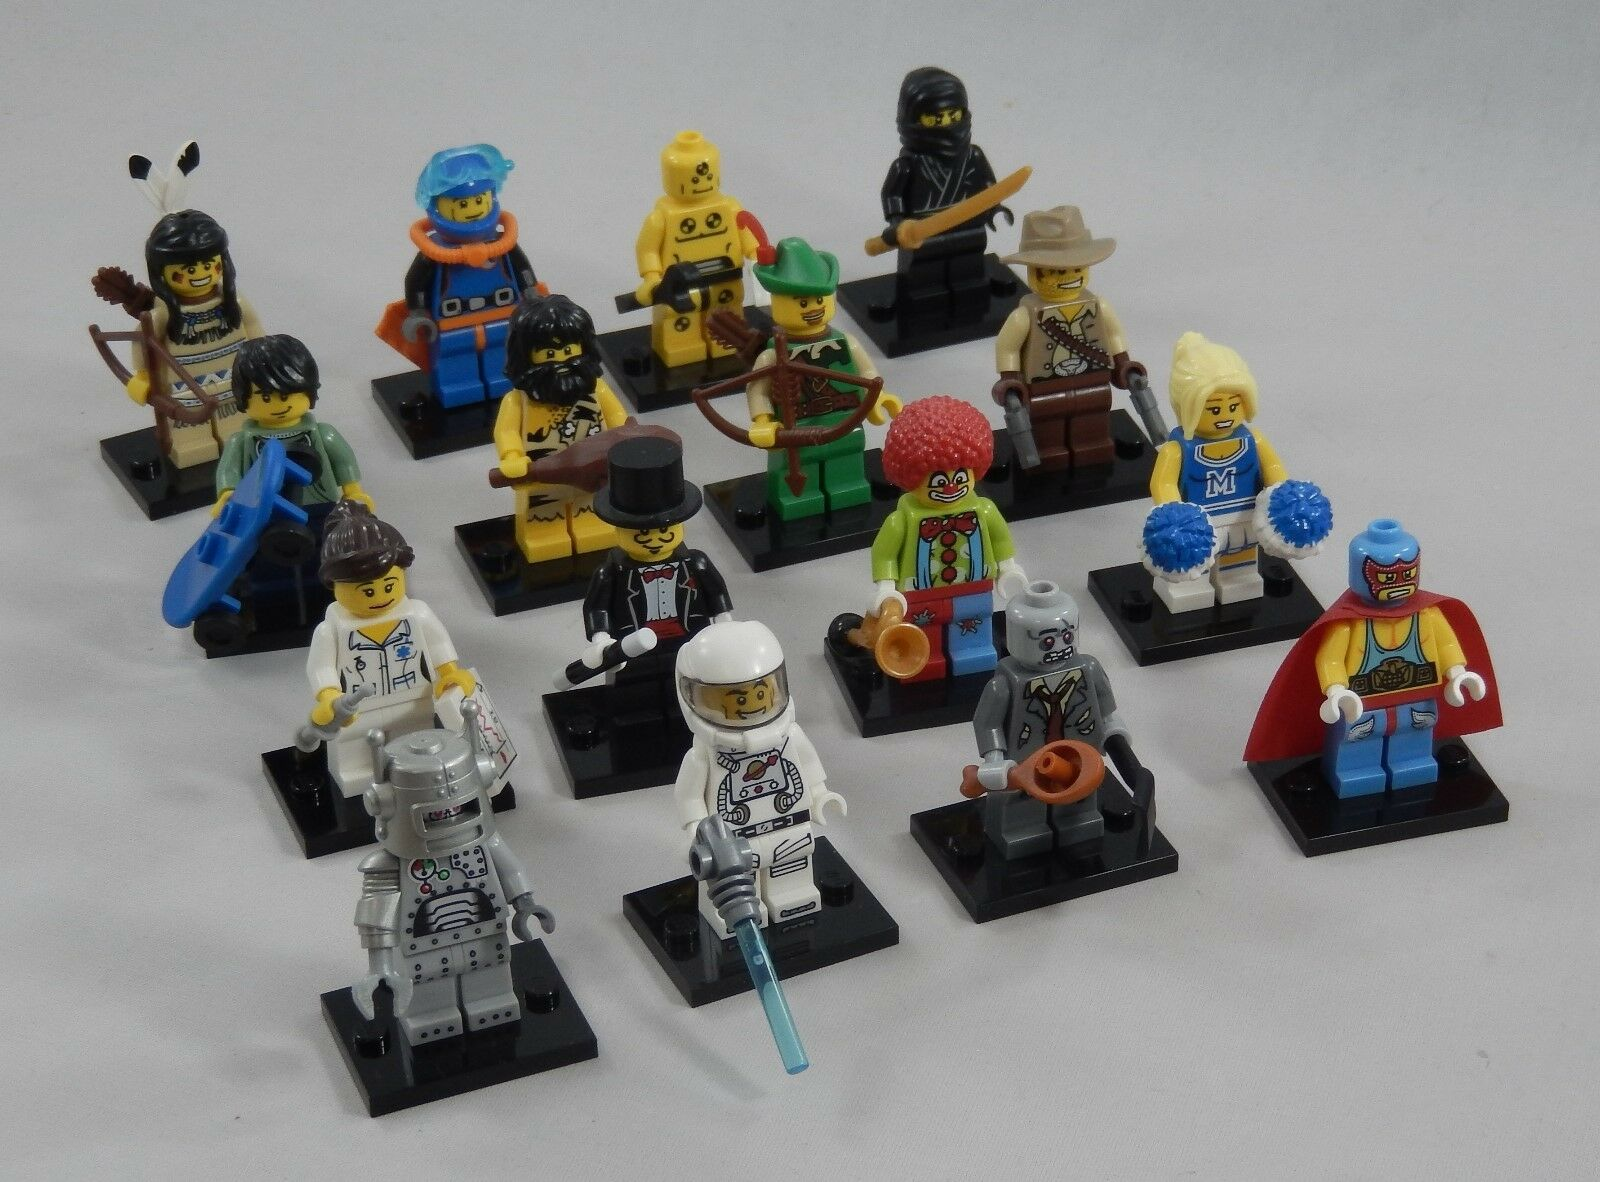 LEGO 8683 Collectible Minifigures Series 1 Complete 16 Set Figure Adult owned